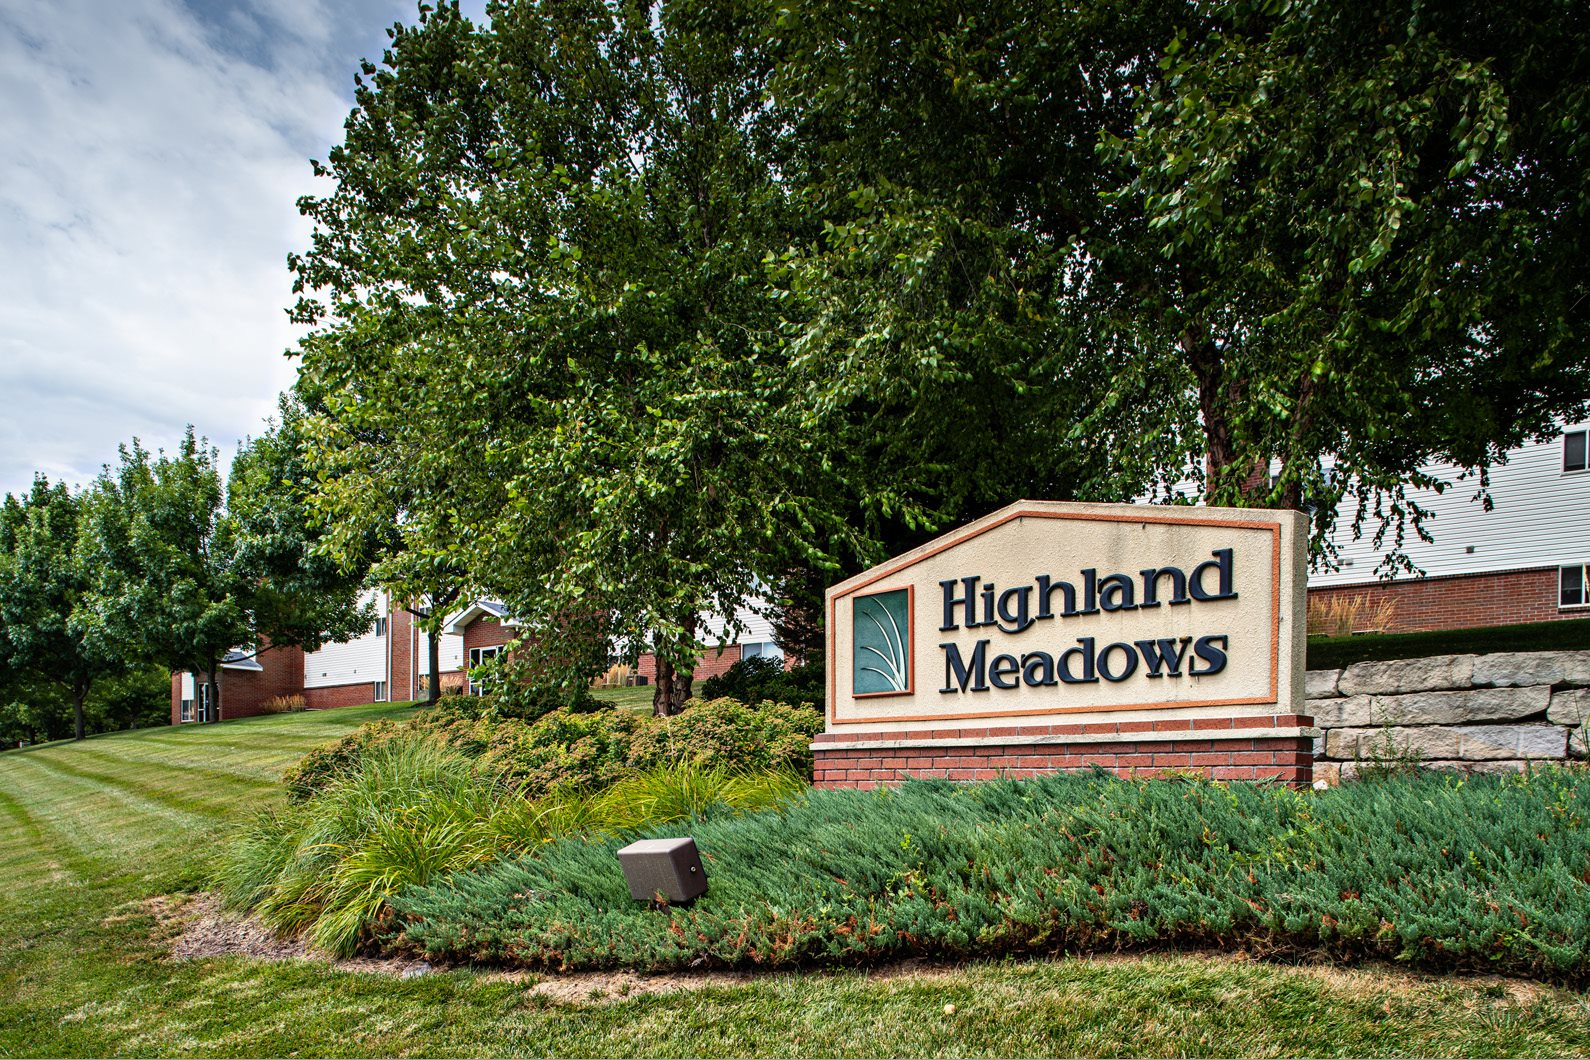 Property Signage at Highland Meadows, Bellevue, NE